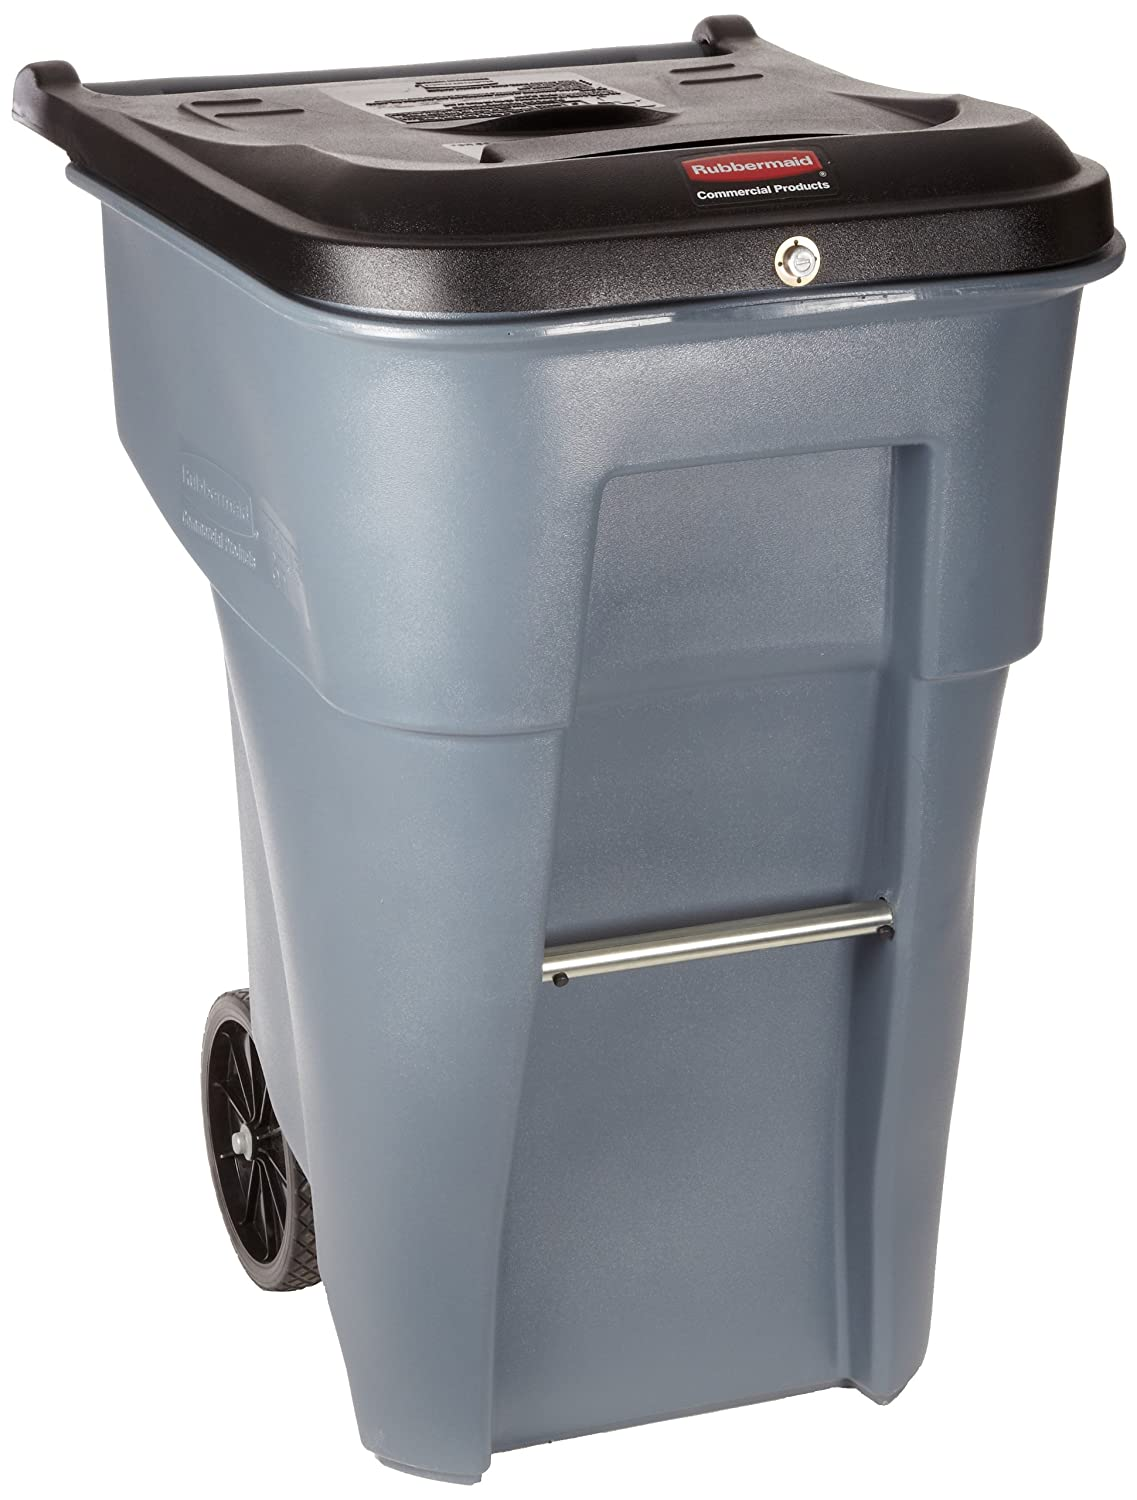 rubbermaid commercial brute heavyduty rollout container 50gallon with recycling logo blue waste bins amazoncom